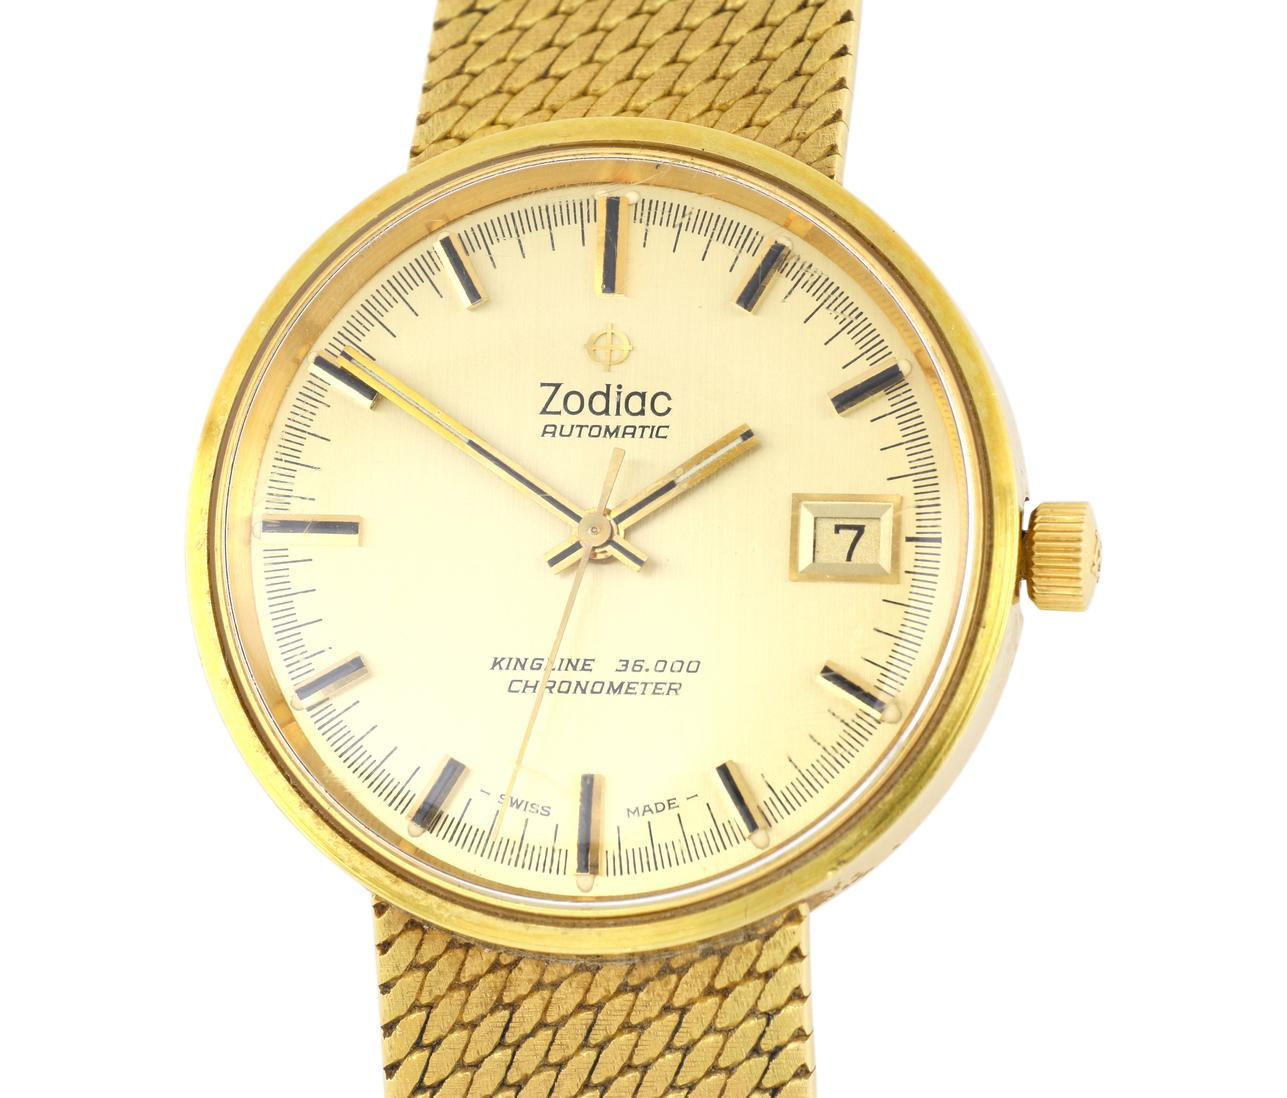 Zodiac Gent's vintage 18ct gold wrist watch with 18ct gold band